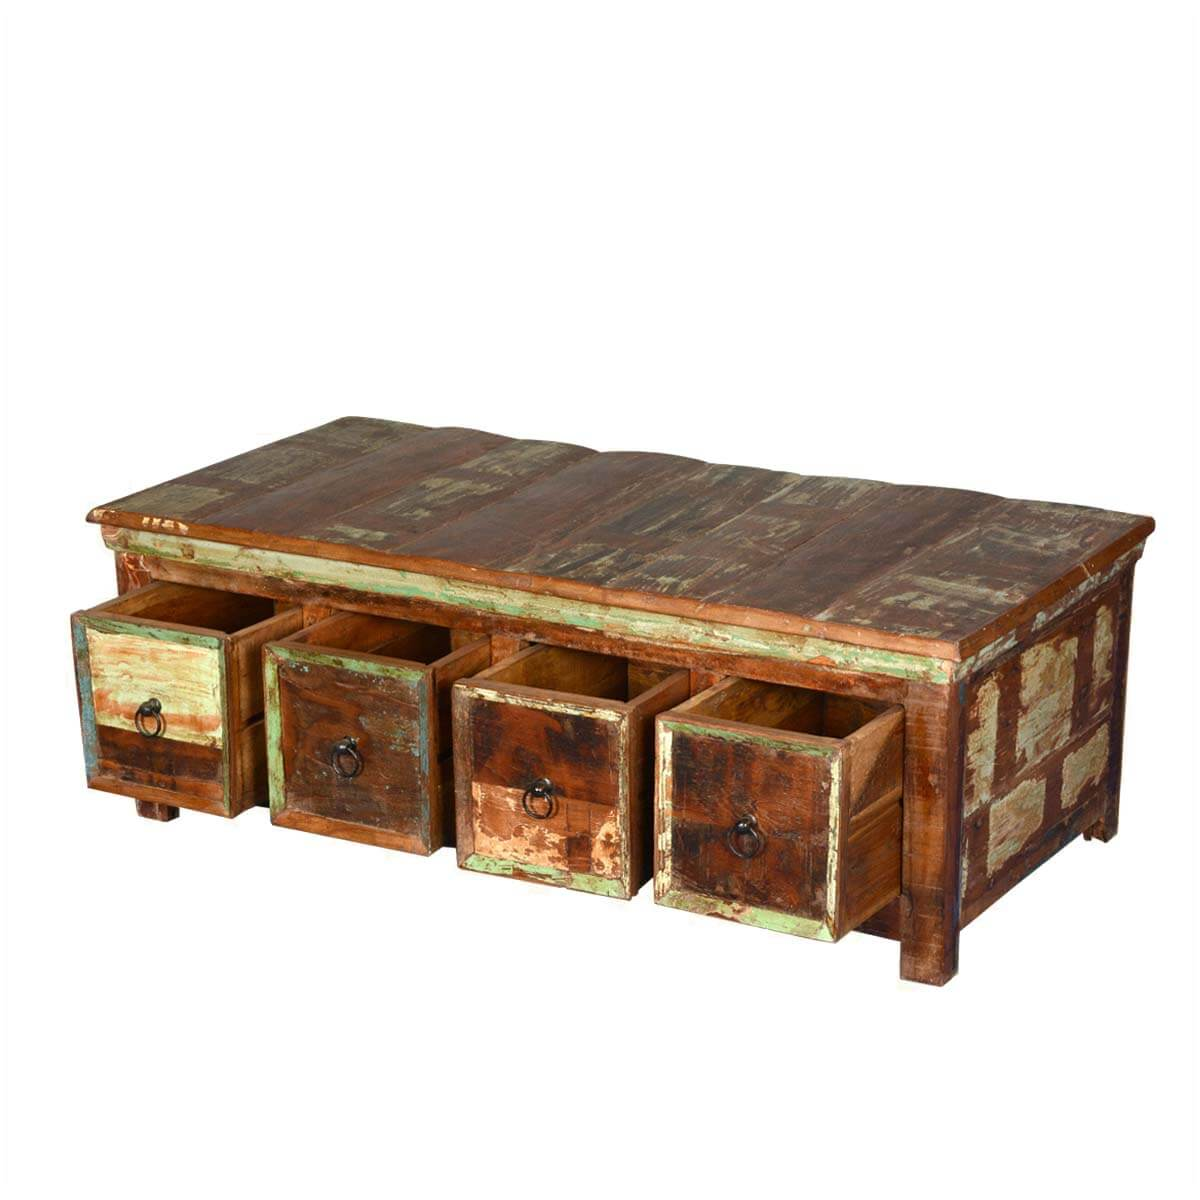 Rustic reclaimed wood coffee table with storage drawers for Reclaimed coffee table